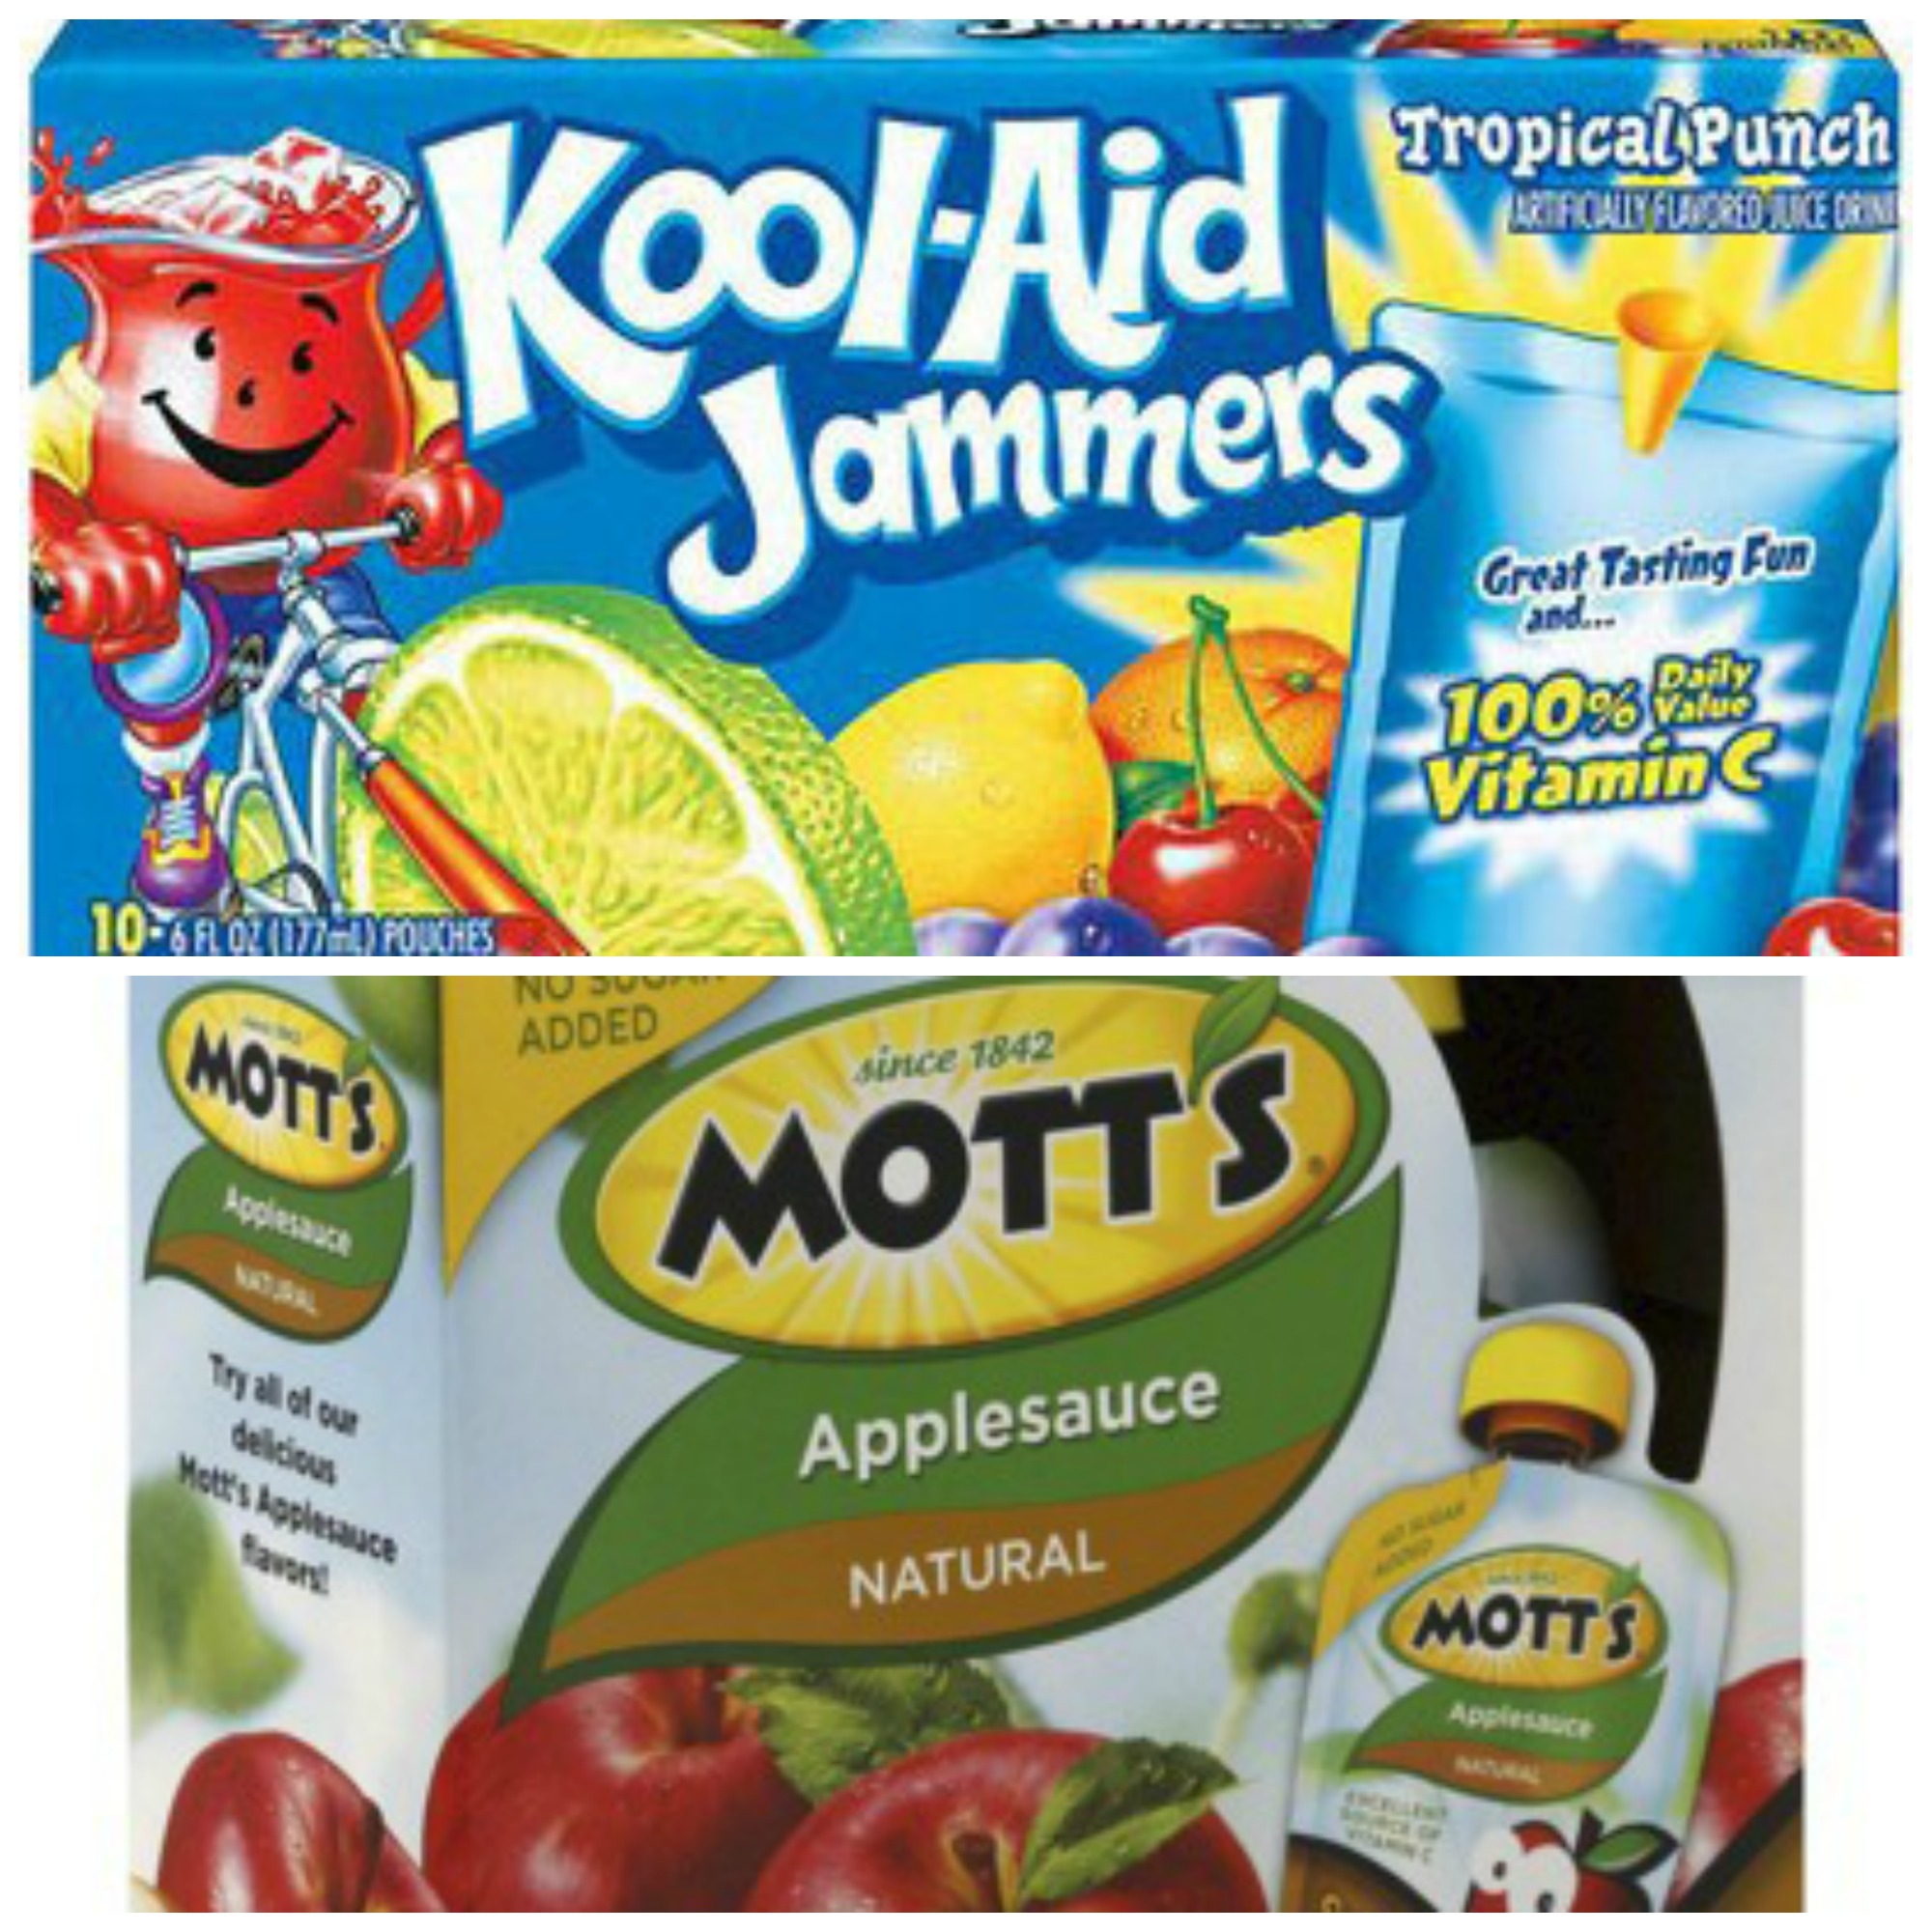 kool aid mott deals Kool Aid and Motts Apple Sauce only $0.37 at Target!